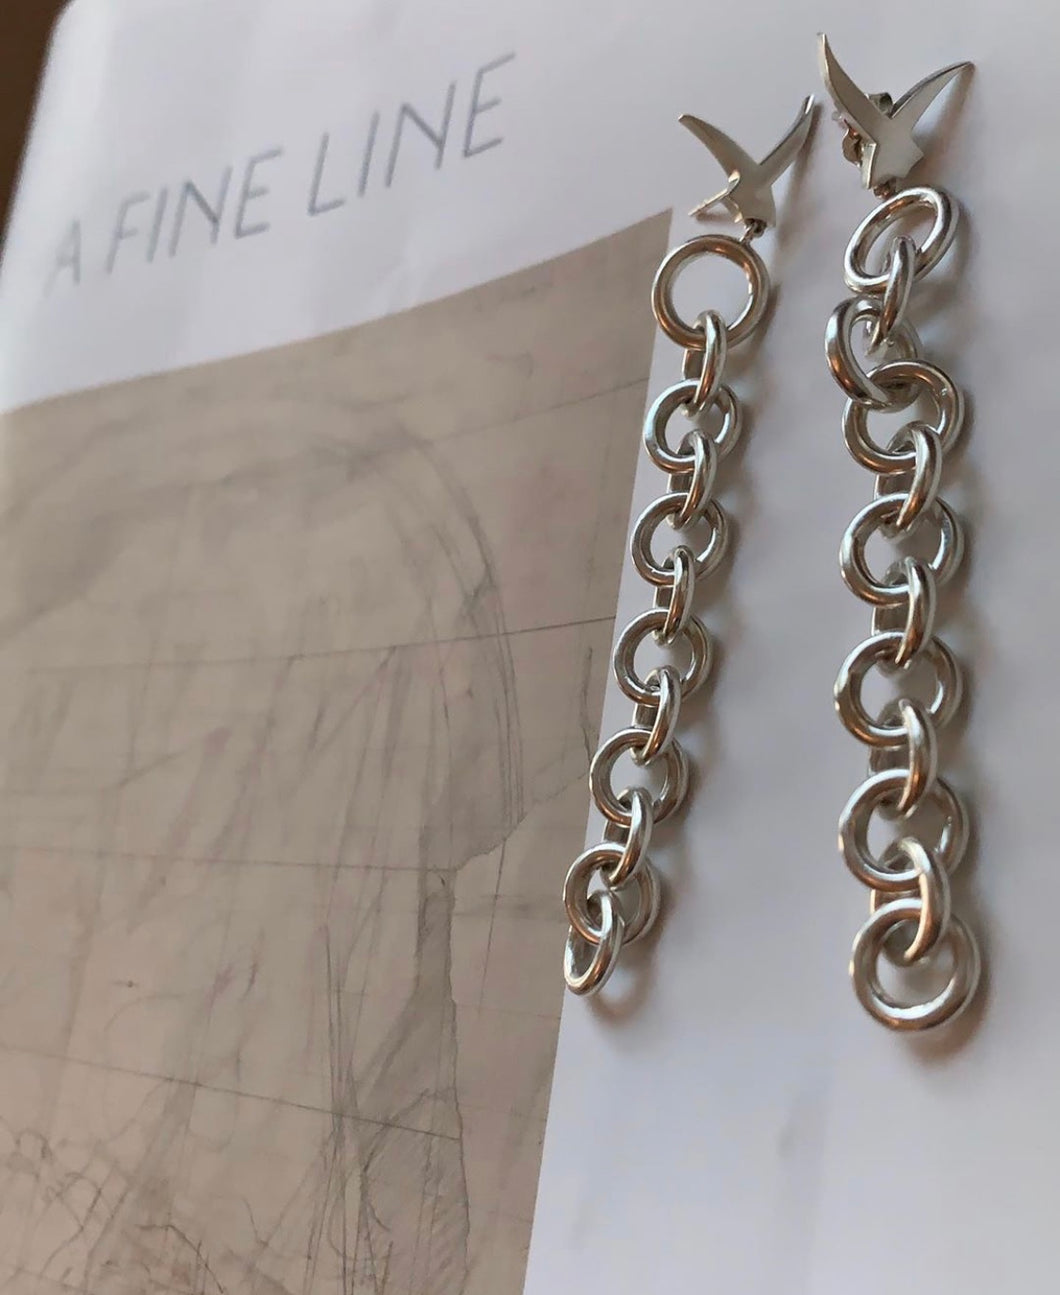 Usfuur Sterling Silver Chain Earrings - Silver